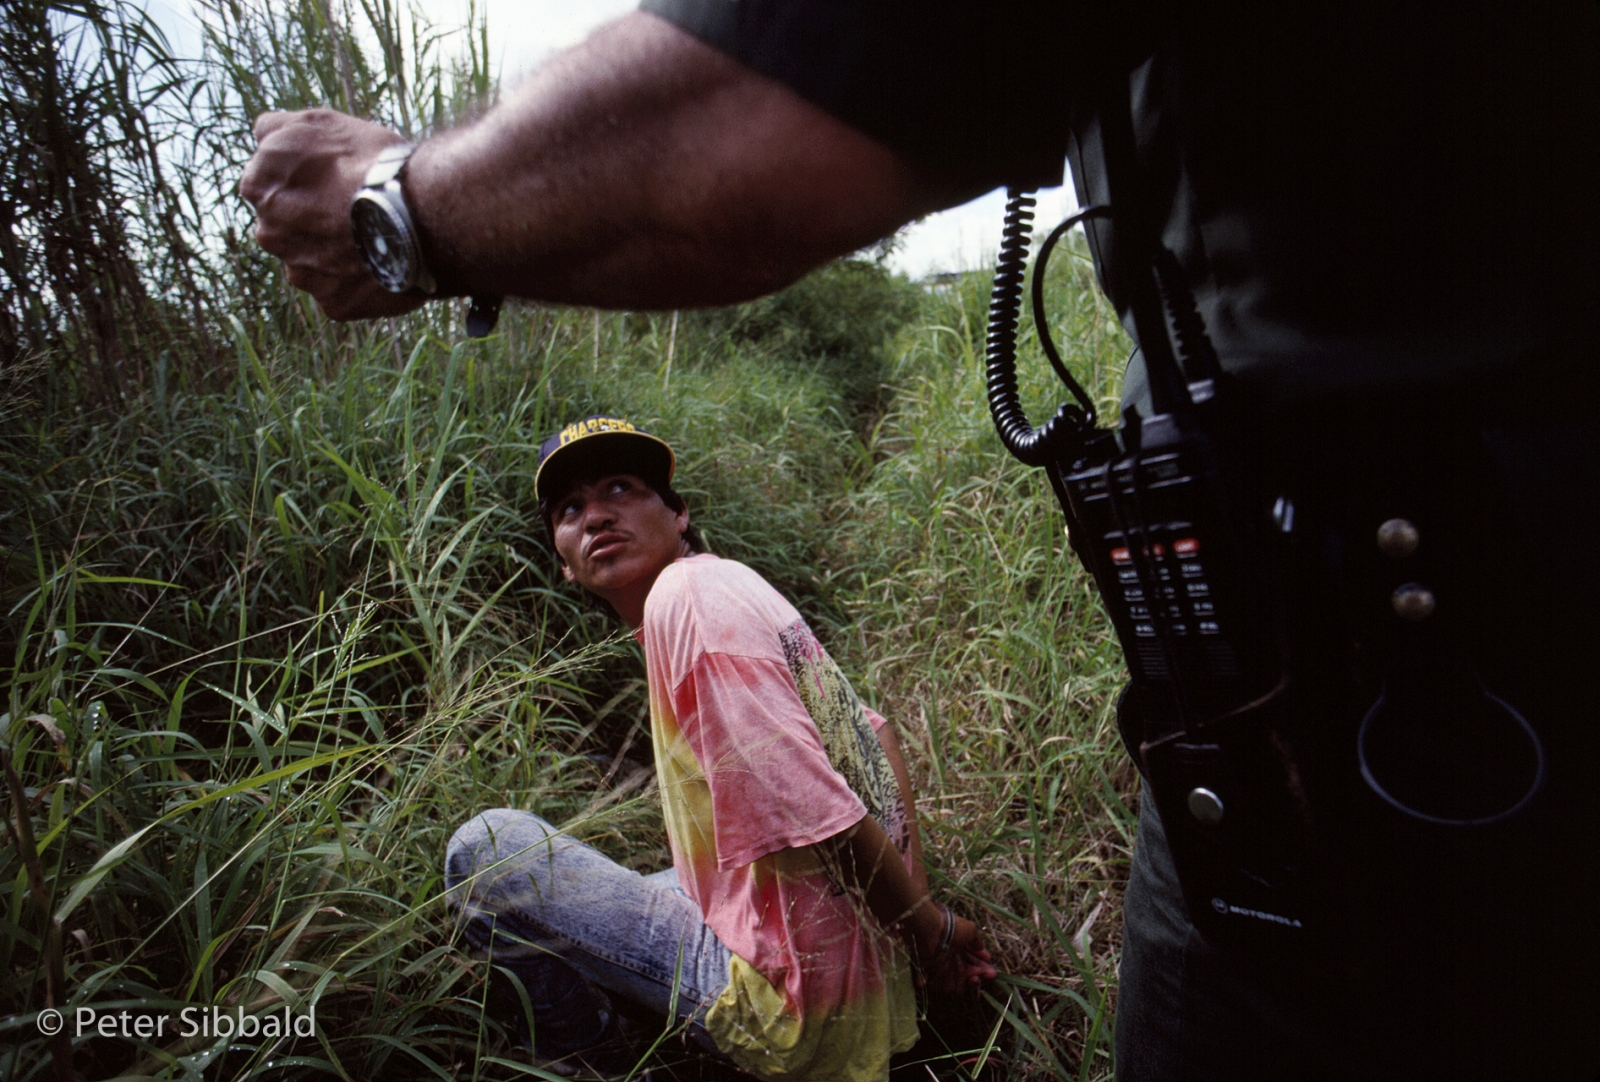 Art and Documentary Photography - Loading 002_nabbed-by-US-Border-patrol.jpg